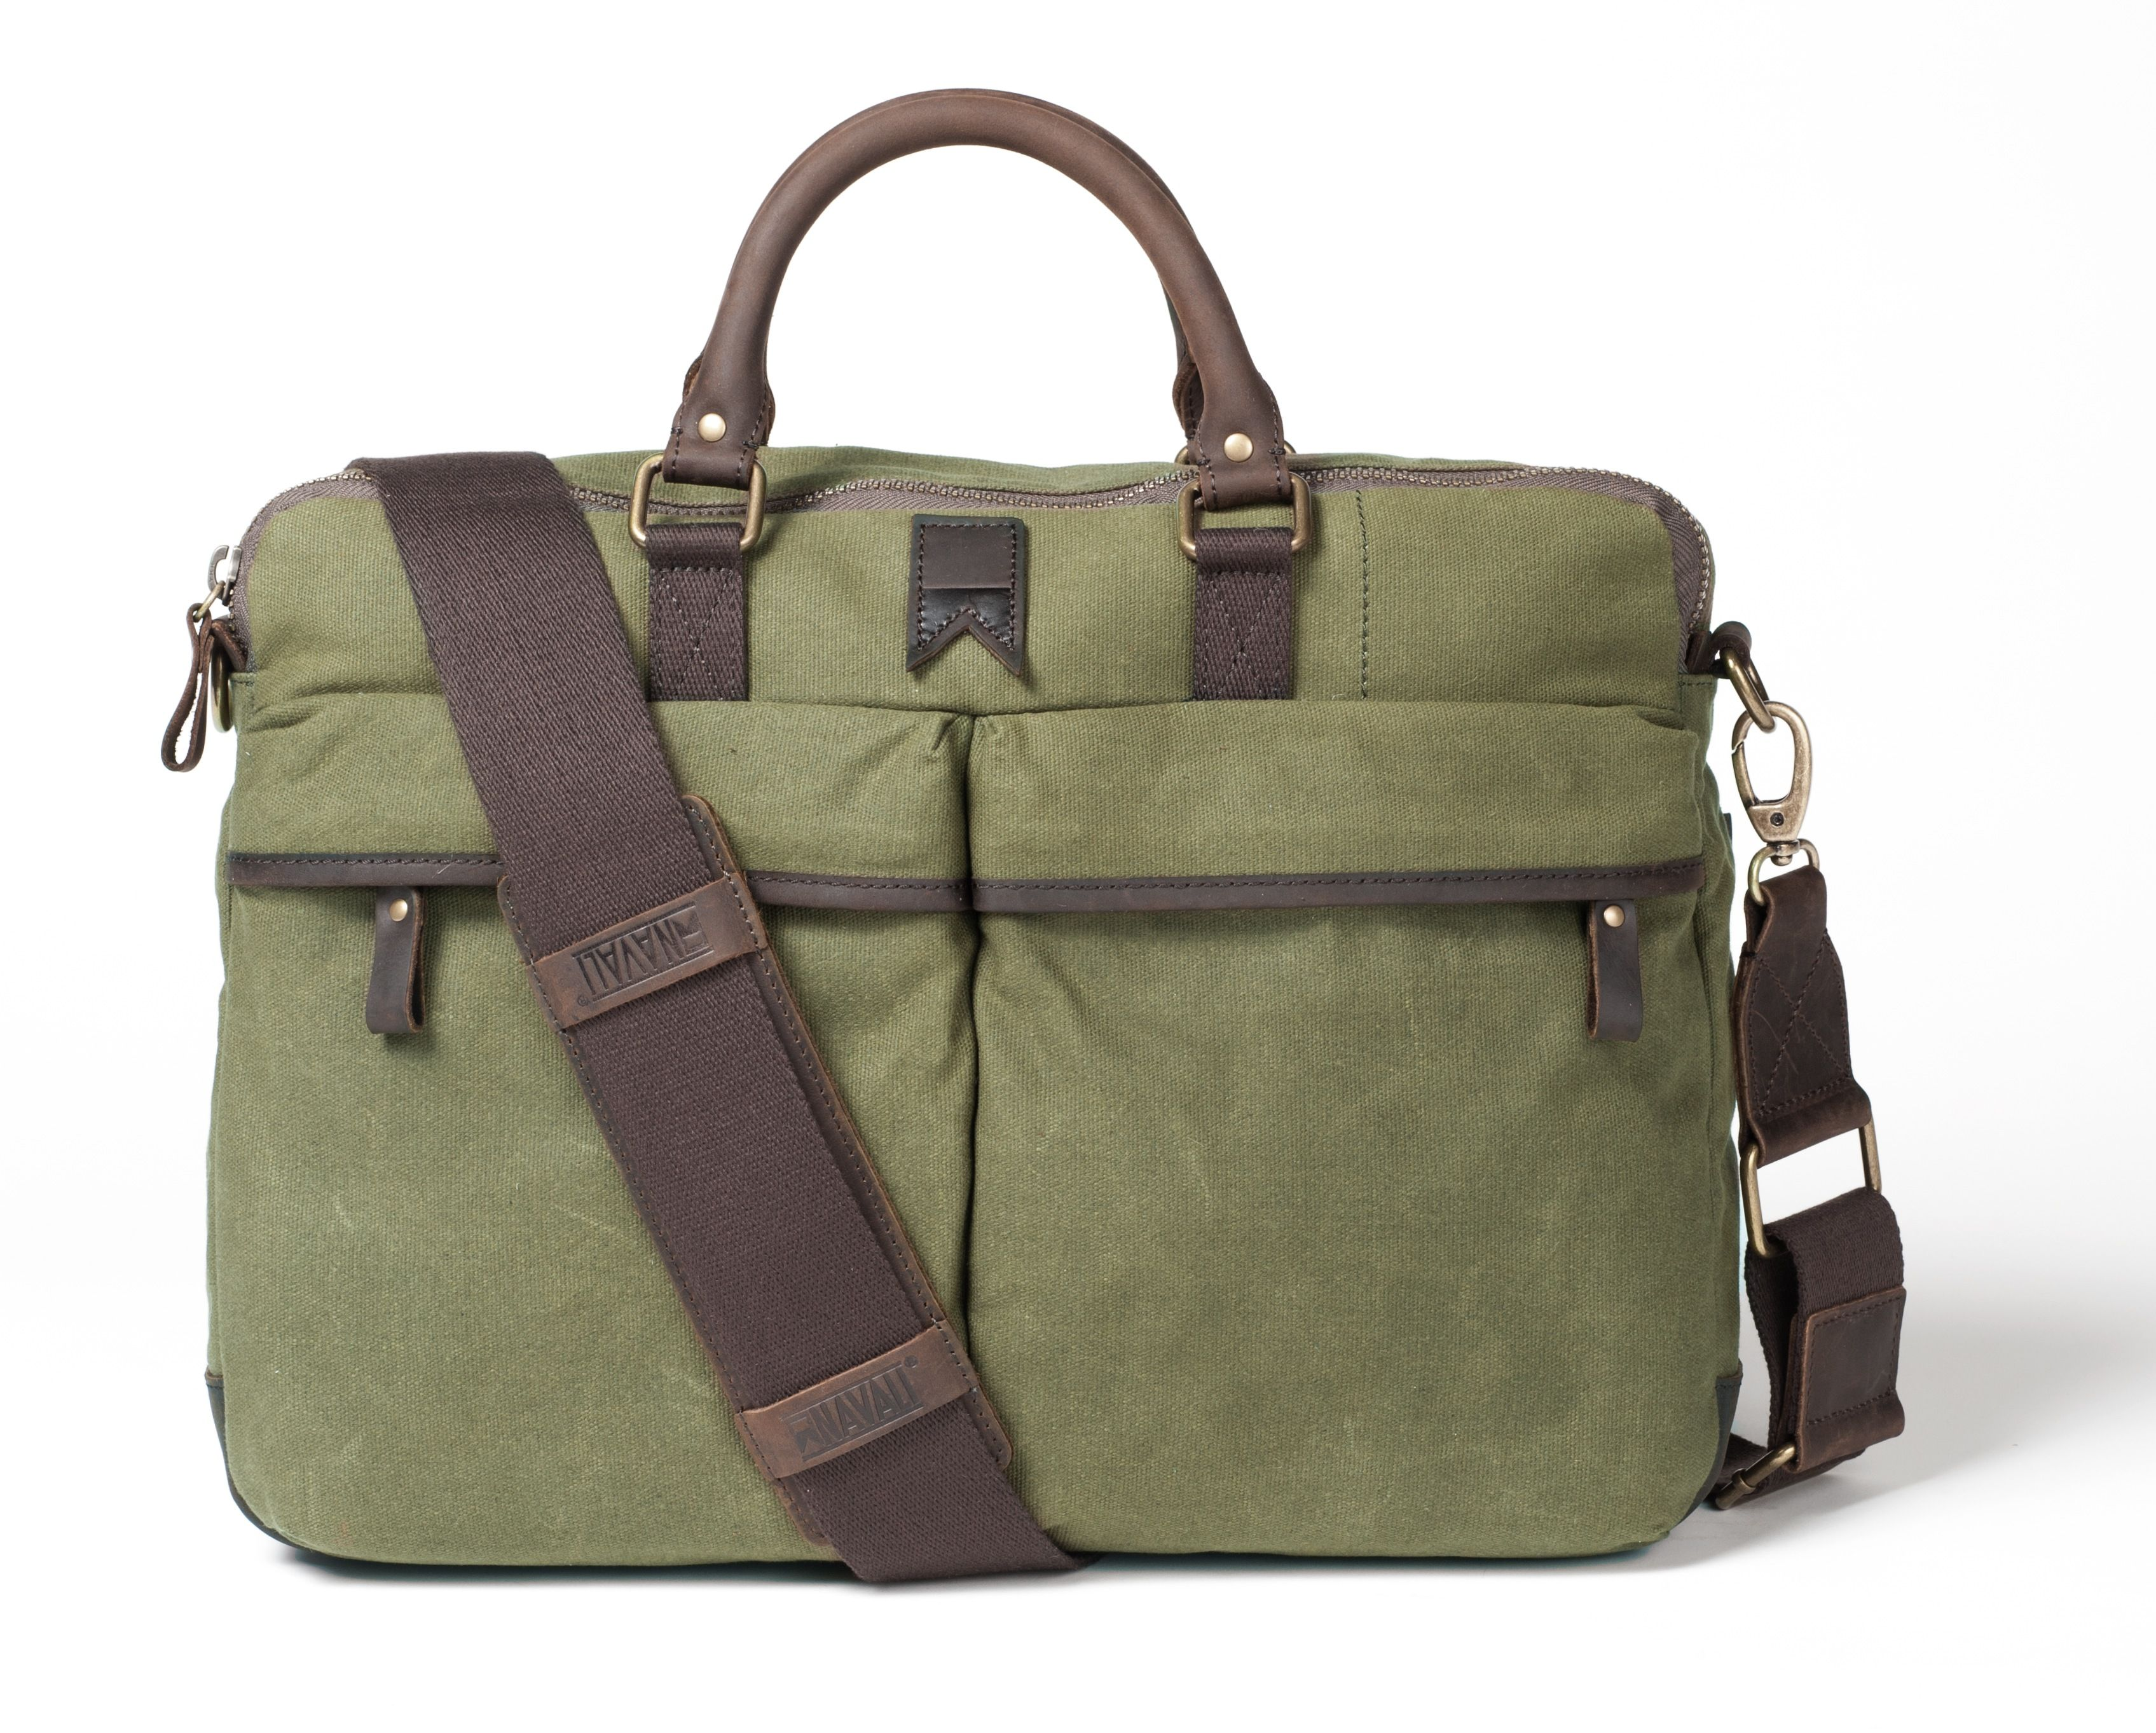 00b43fd7922e Navali Waxed Gunner Briefcase (Olive Canvas)  149.99 at www.navali ...